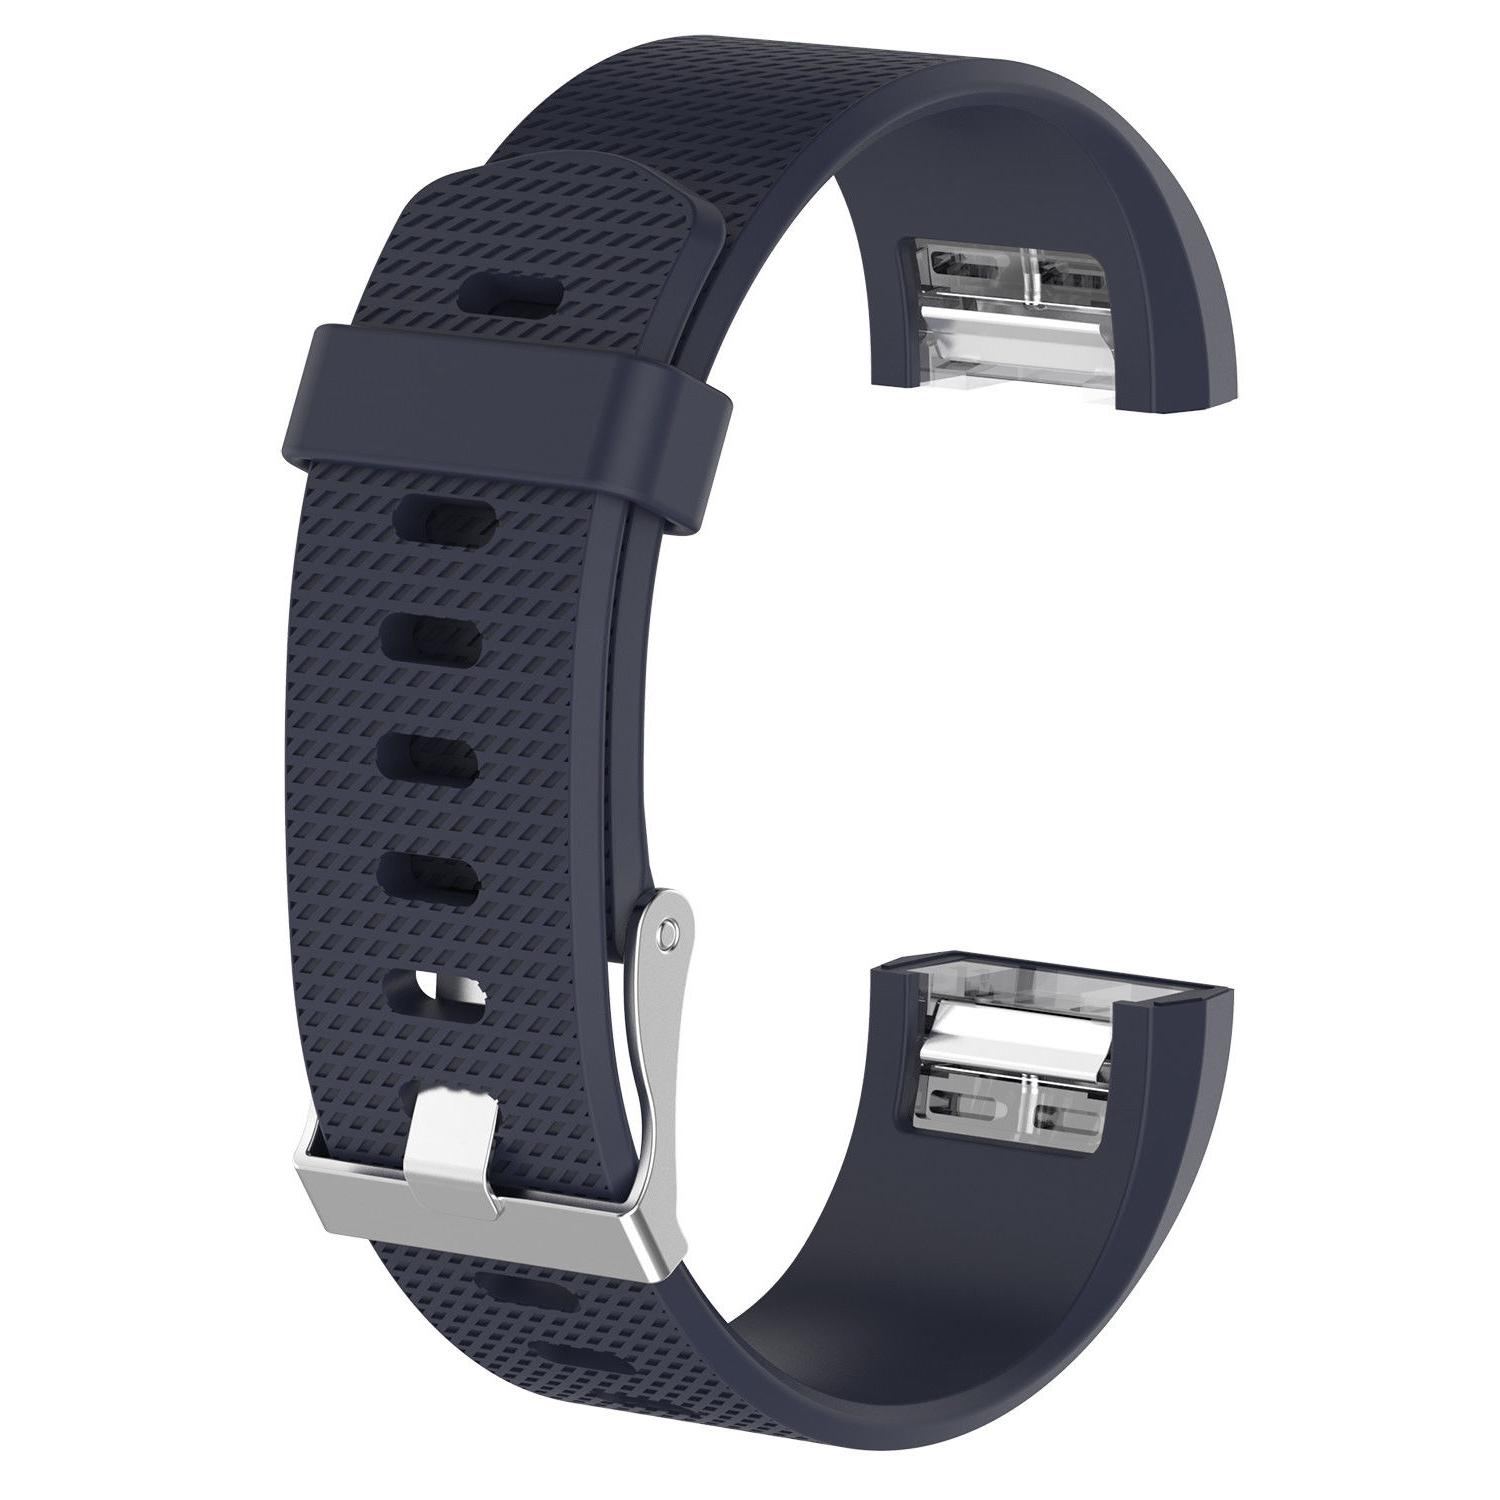 3 Replacement Band for Fitness